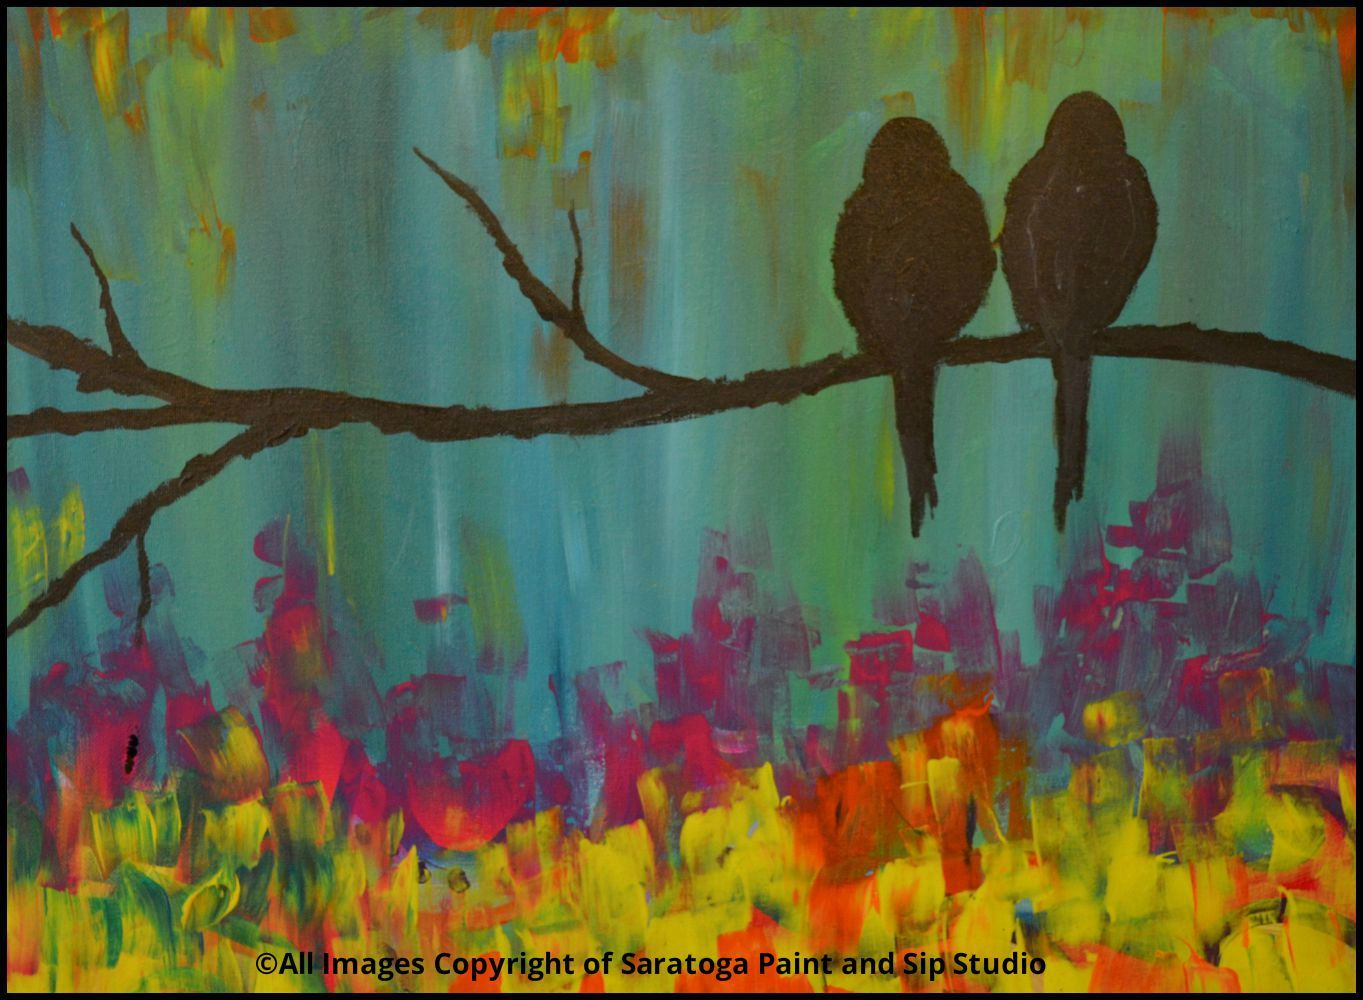 HANGIN\' IN A TREE at Saratoga Paint and Sip Studio—We love birds ...